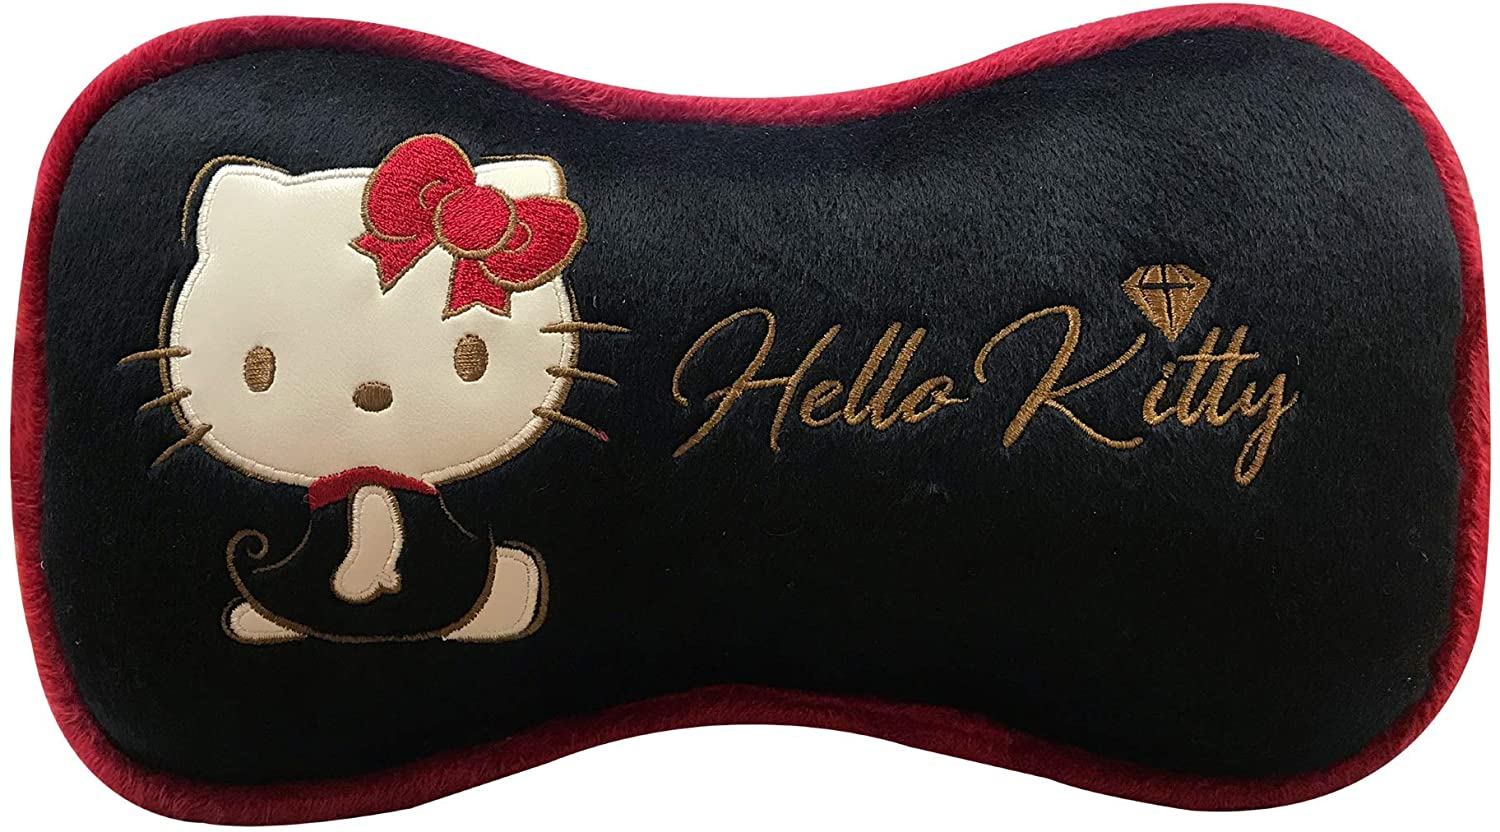 Hello Kitty Neck Rest Cushion for car or Home, Kitty Party Accessory Collection